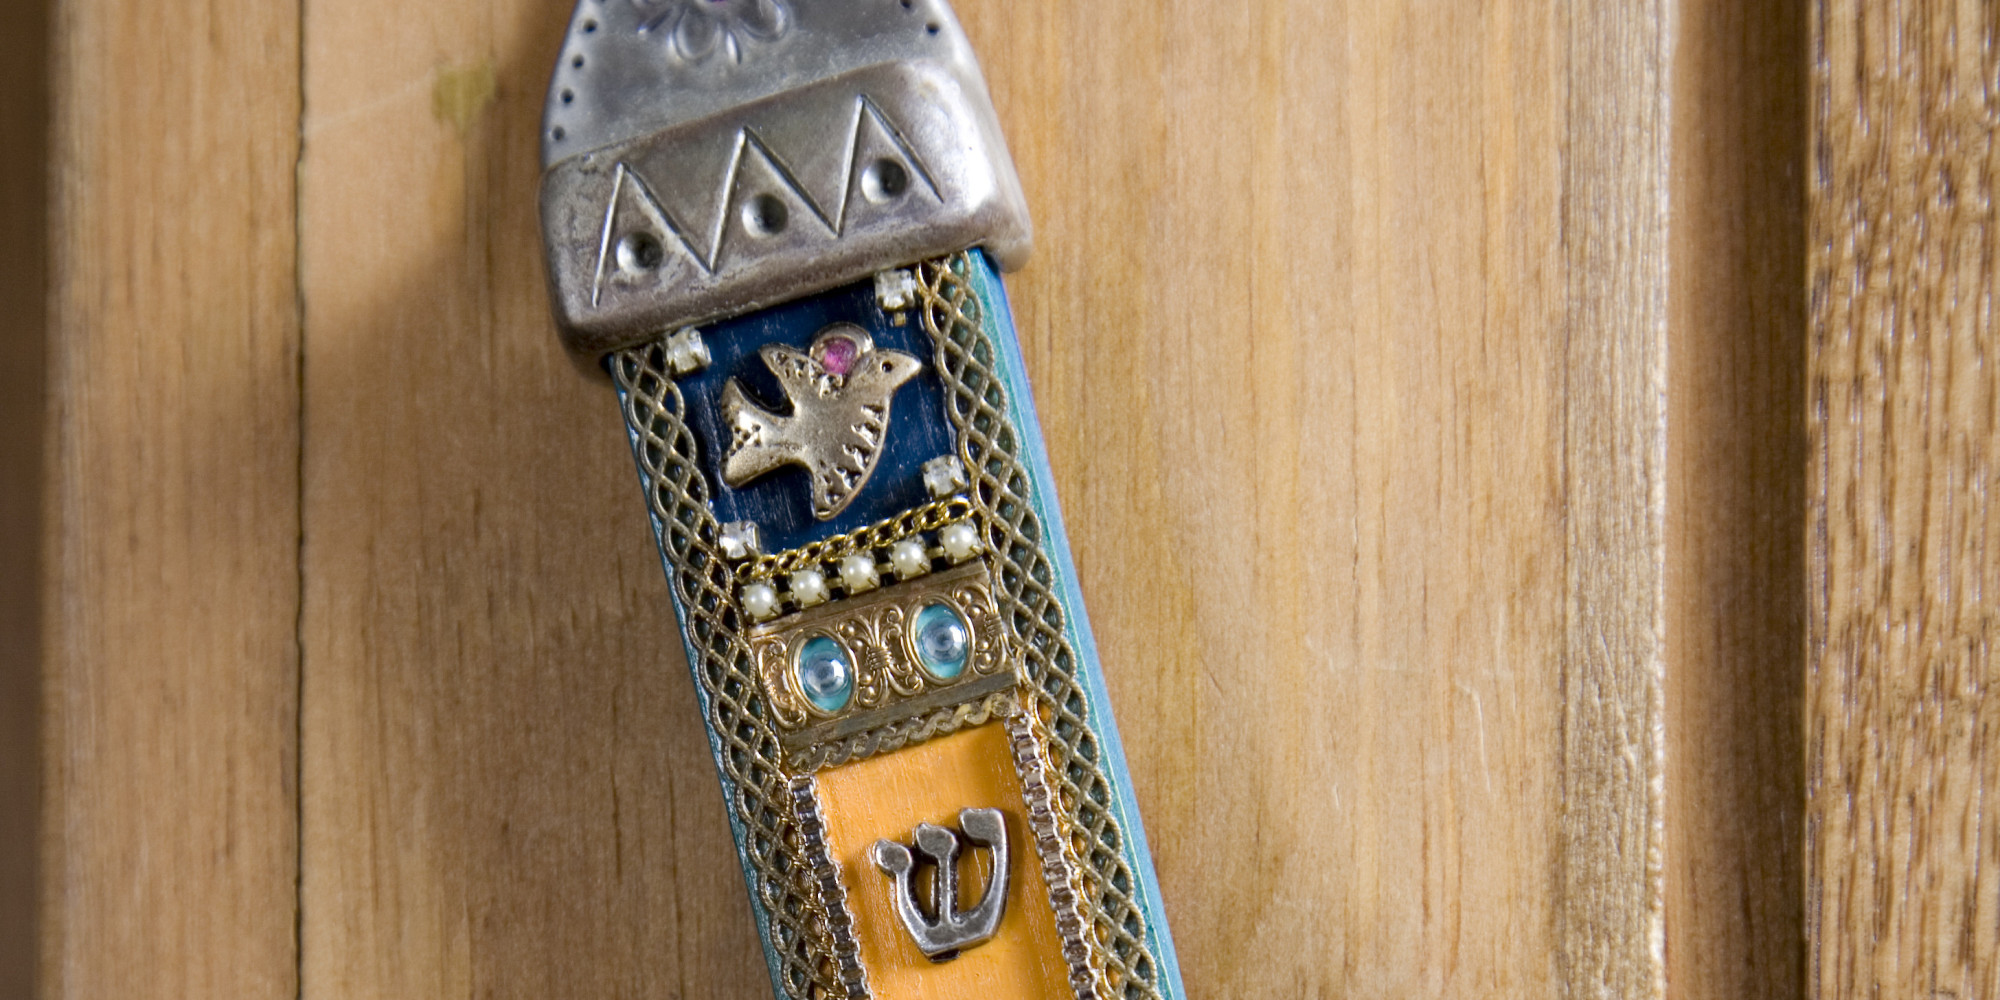 Reddit User Finds Mezuzah And Respectfully Asks Jewish